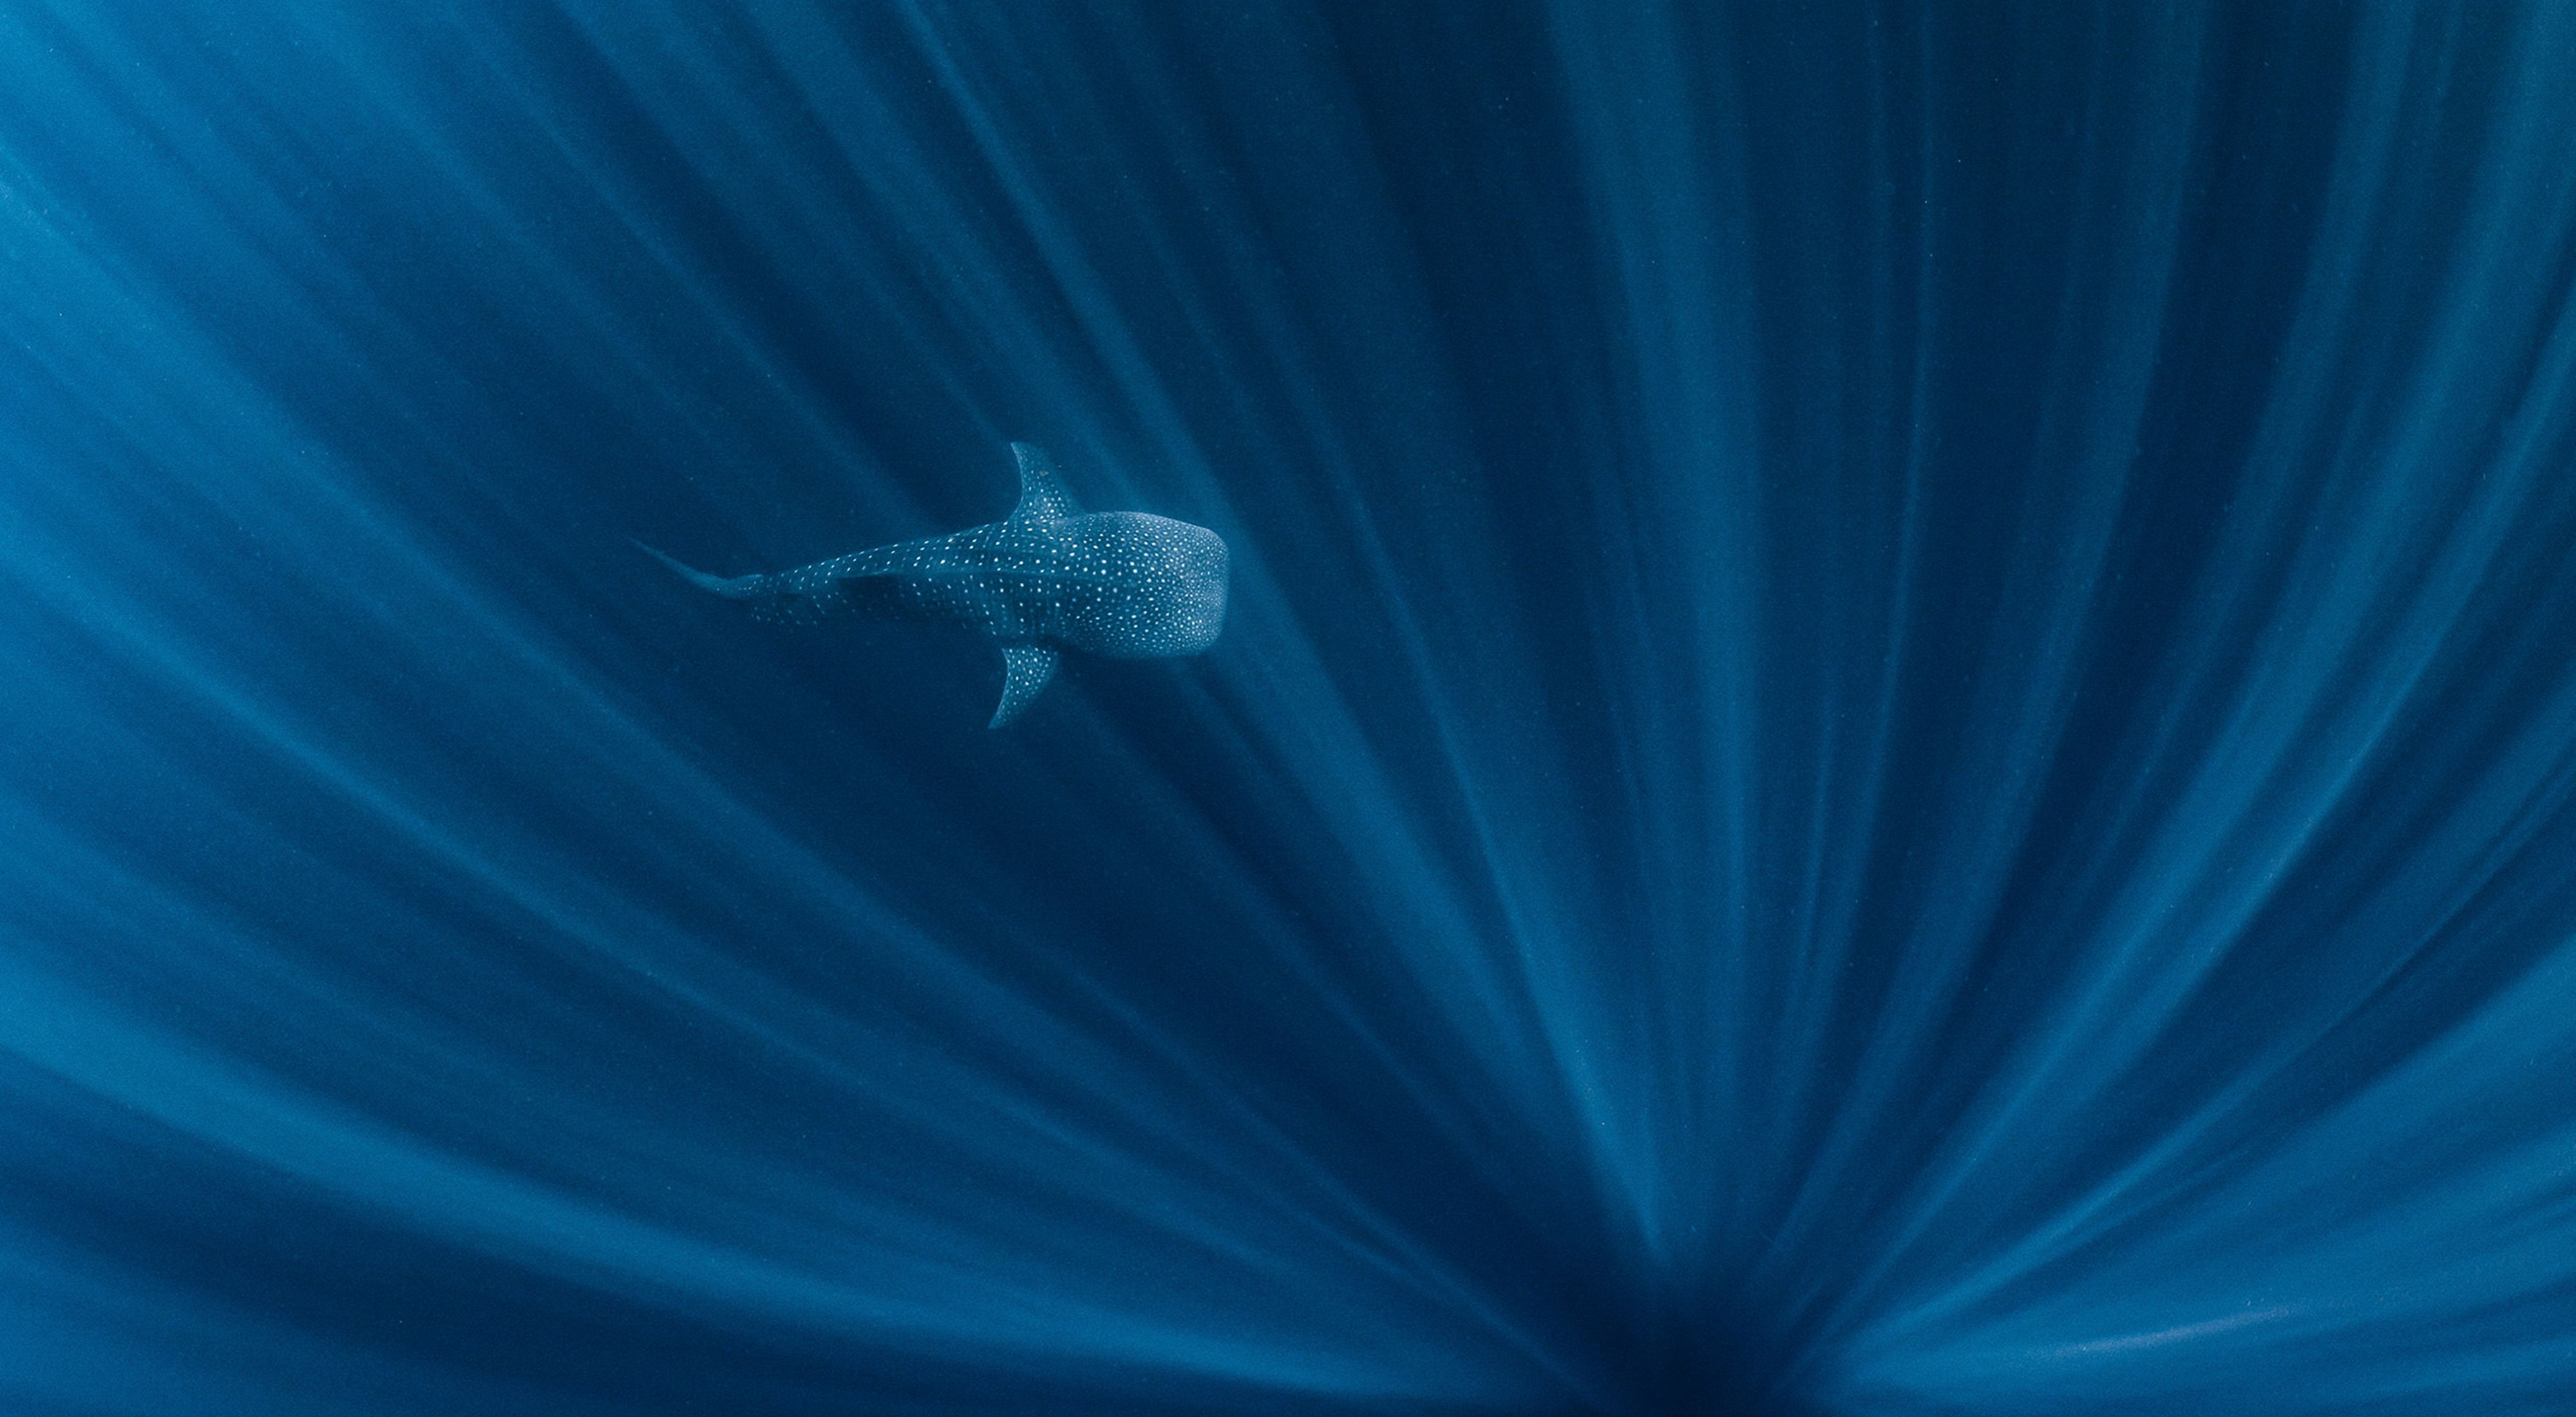 A whale shark swimming in the depths off of Ningaloo Reef, Western Australia.